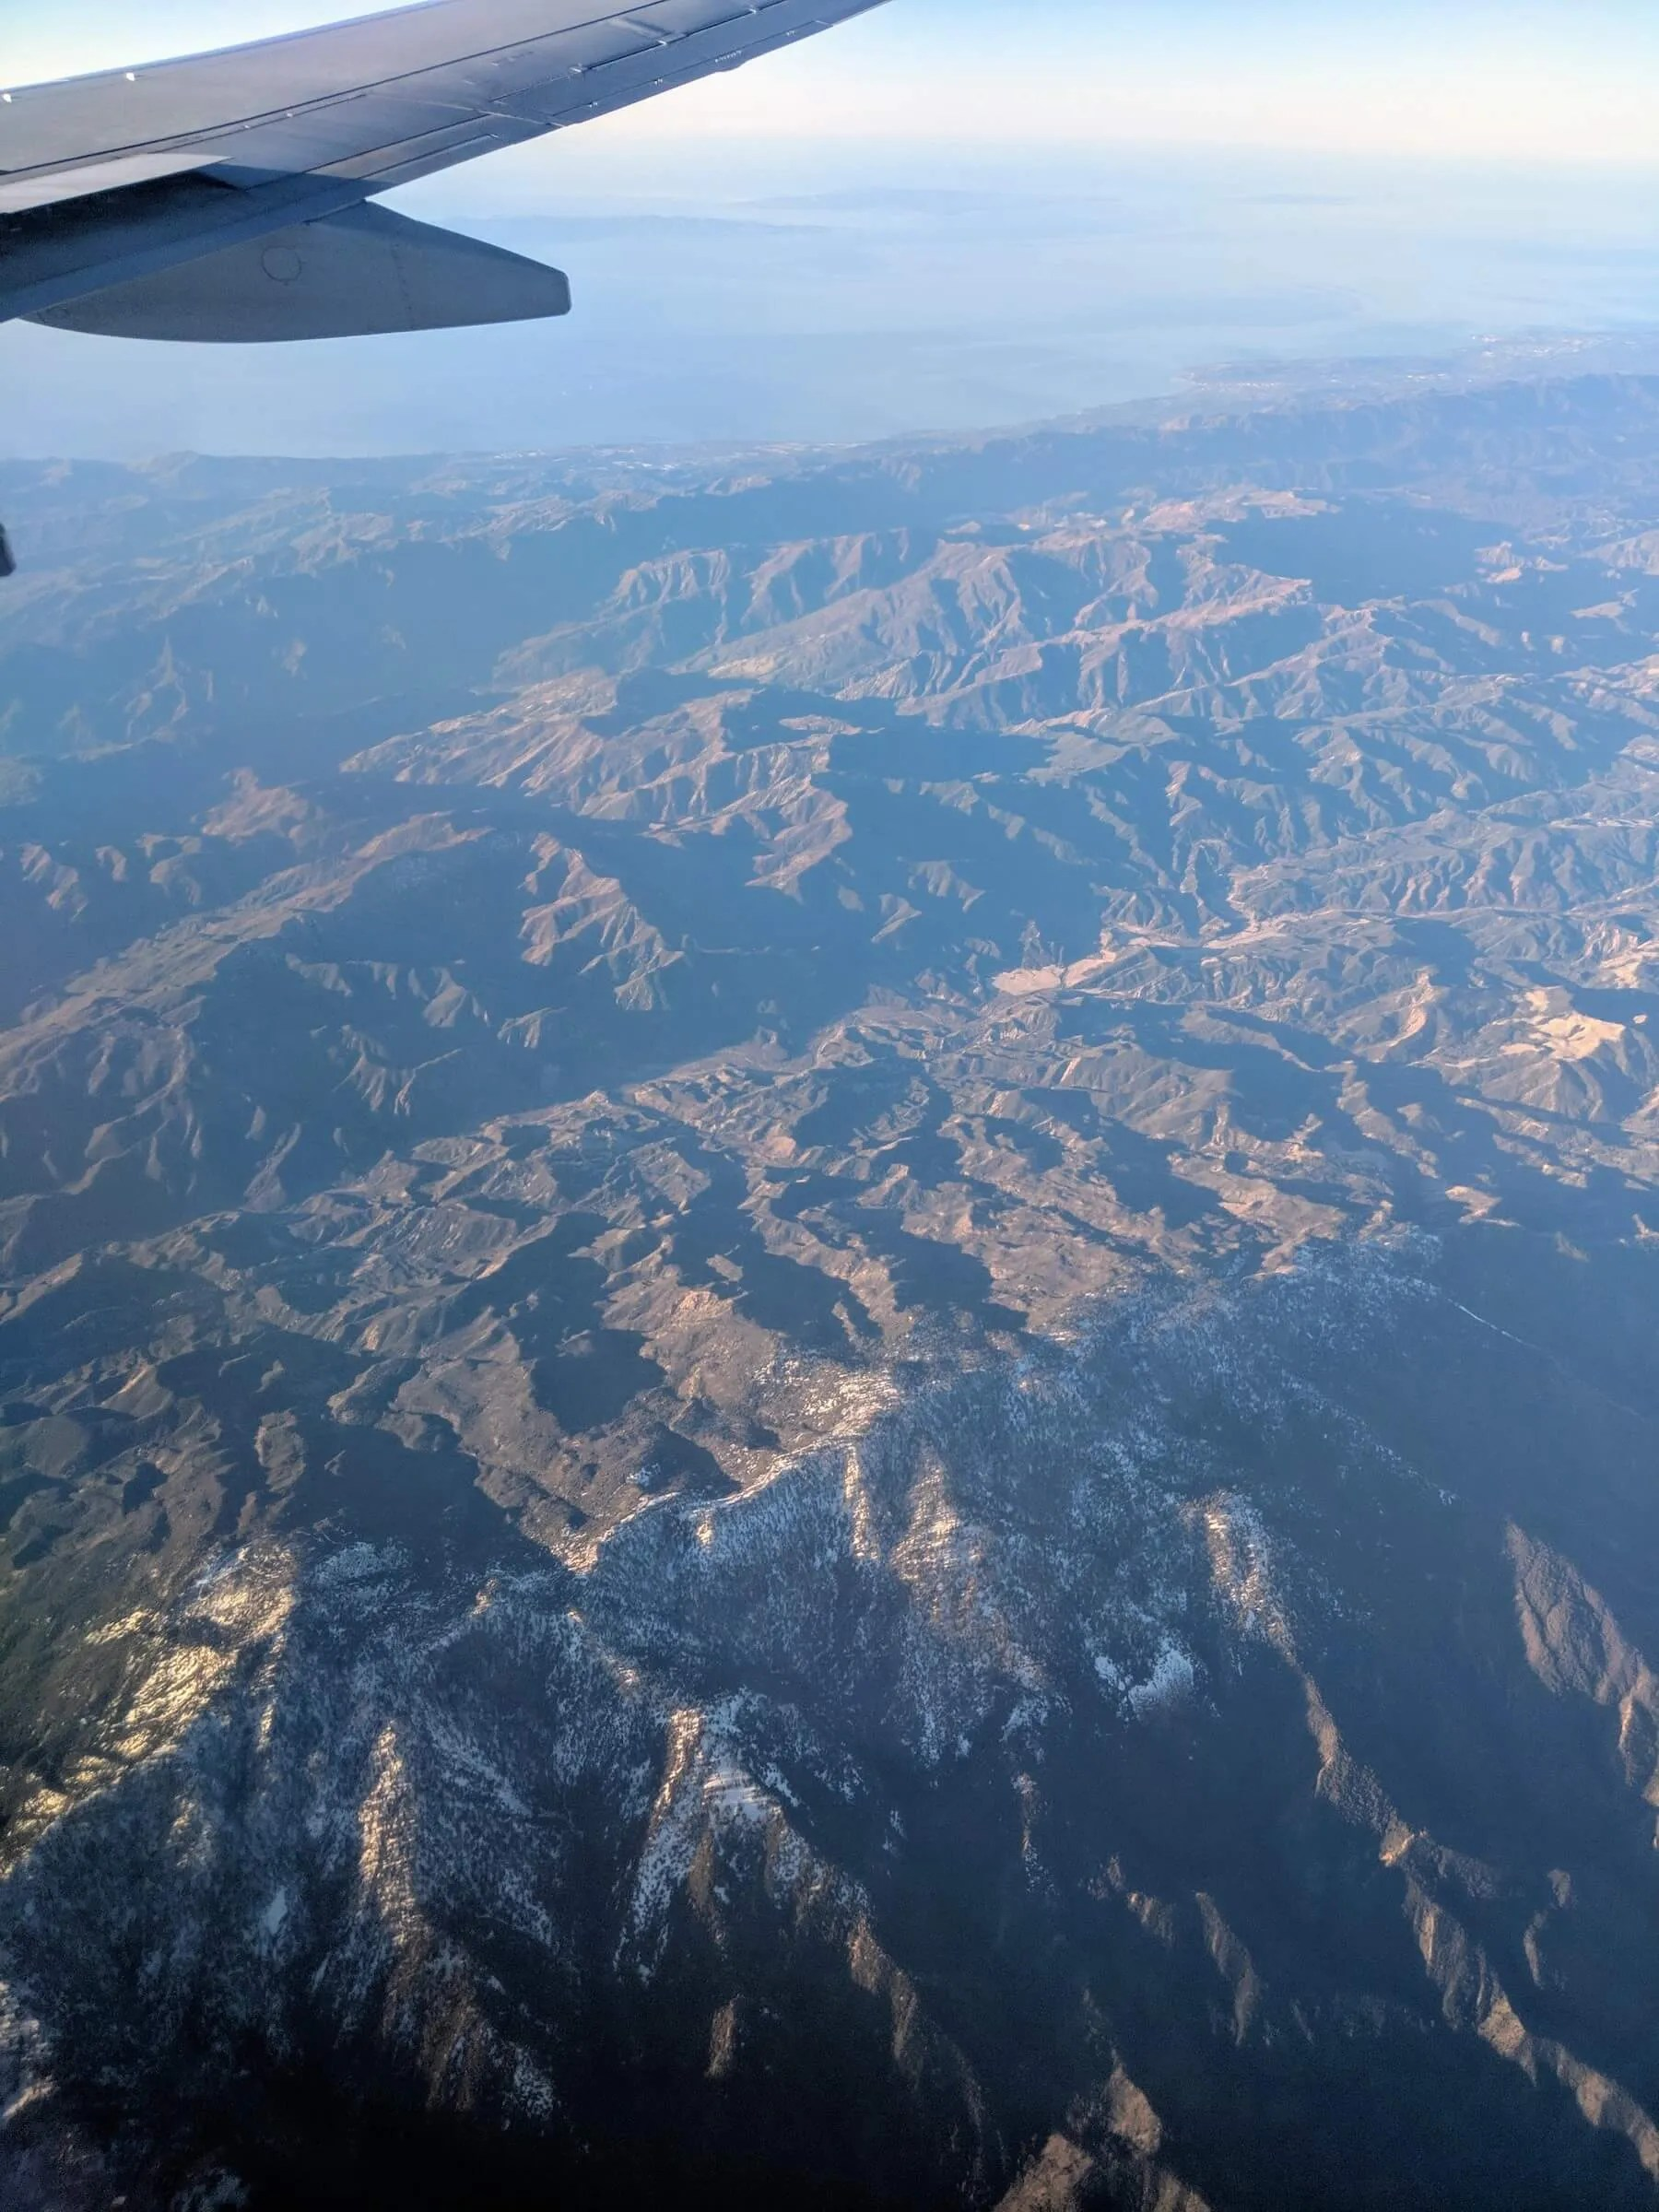 Snow on Southern California's Transverse Ranges